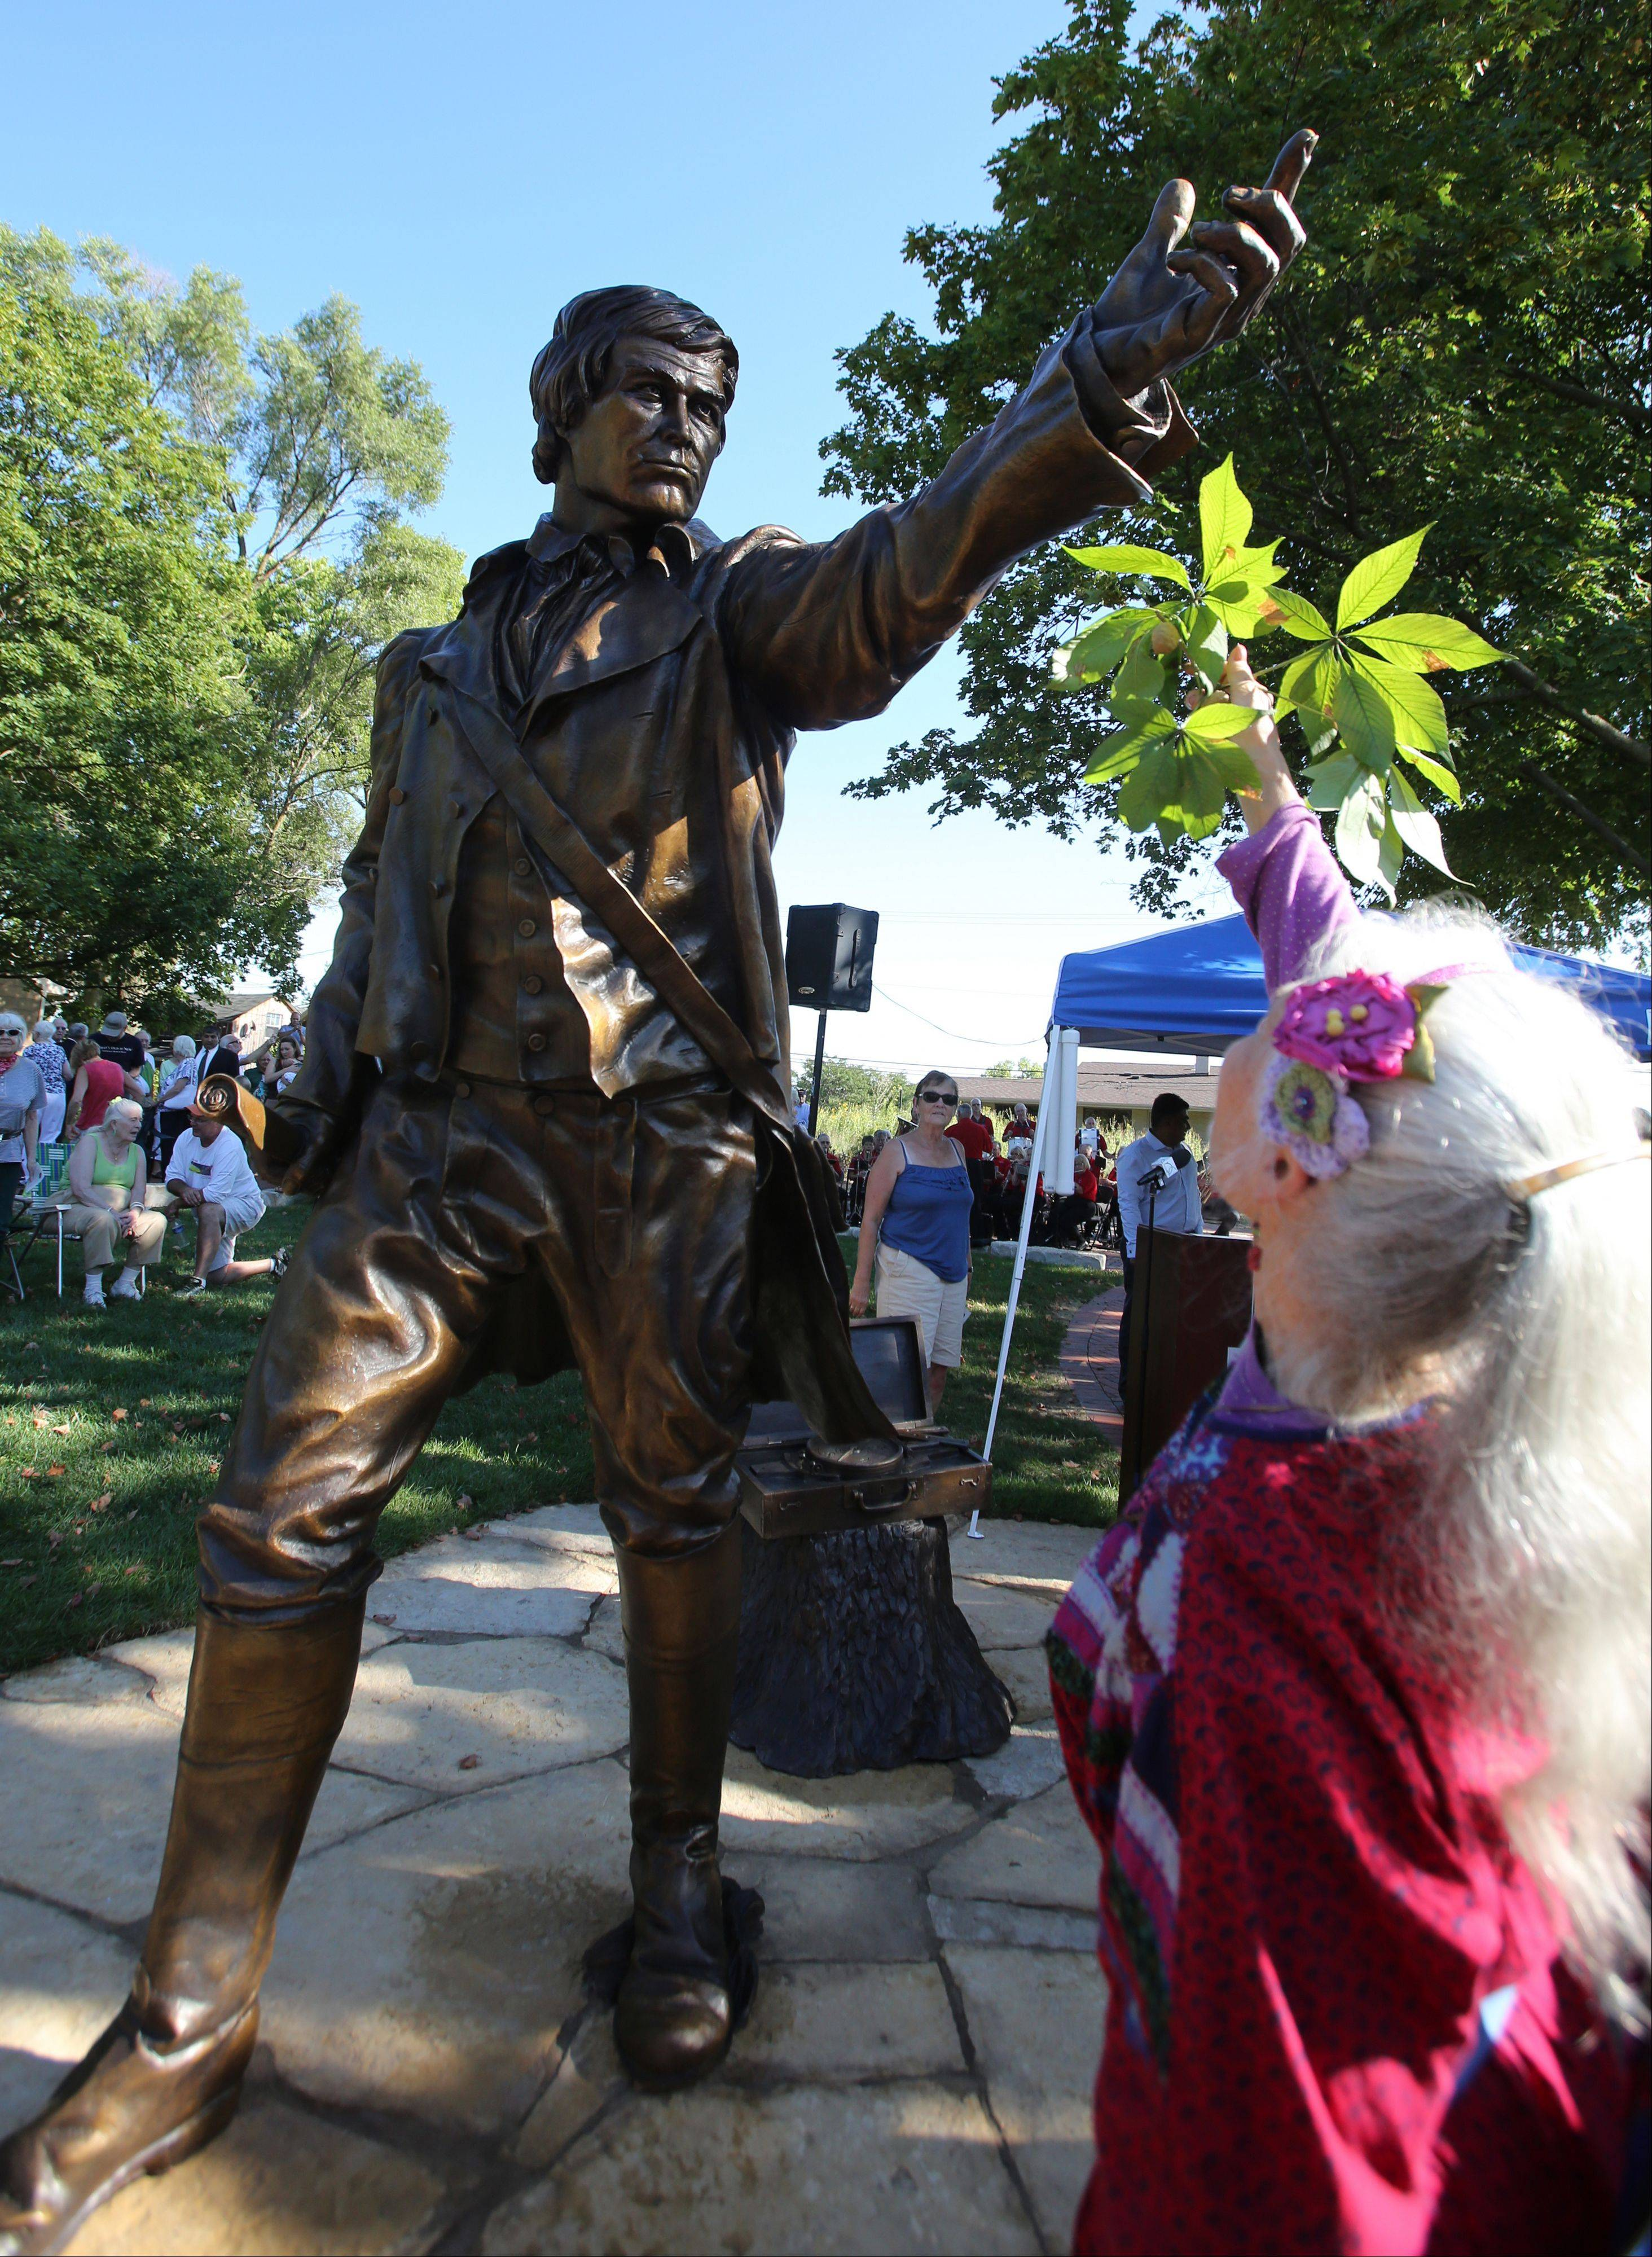 Carolyn Finzer, a fifth generation Naperville resident, offers a sprig of Buckeye tree leaves to the sculpture of town founder Joseph Naper on Friday following a dedication at the Naper Homestead historic interpretive site.